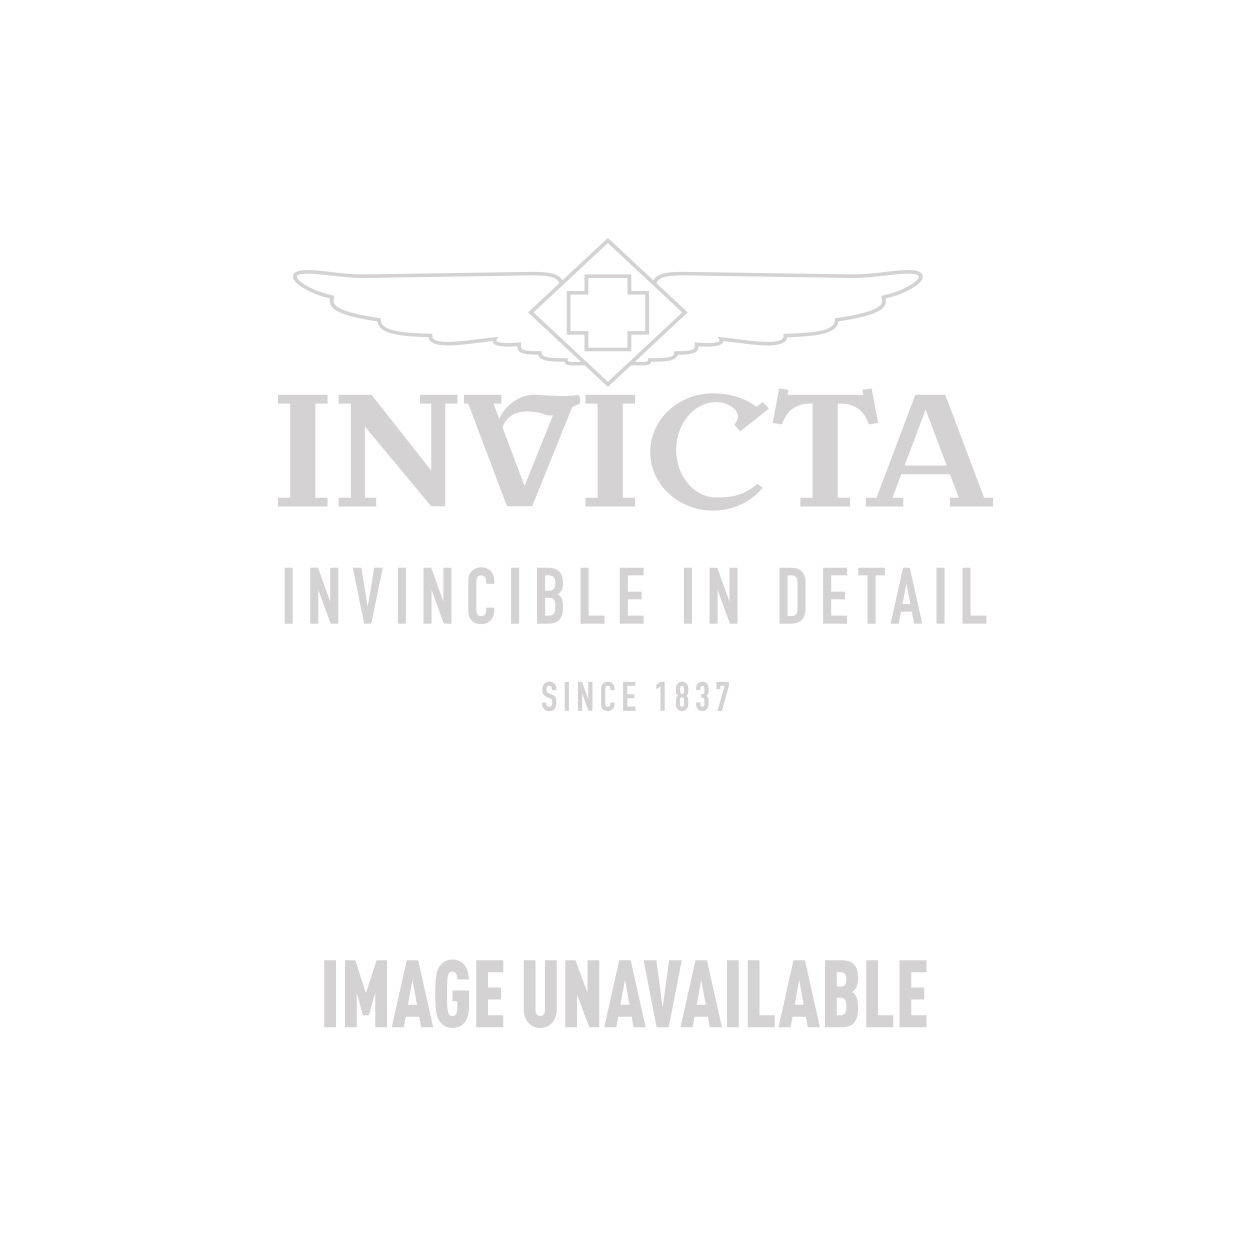 Invicta Reserve Swiss Made Quartz Watch - Rose Gold, Gunmetal case with Rose Gold, Gunmetal tone Stainless Steel band - Model 13045